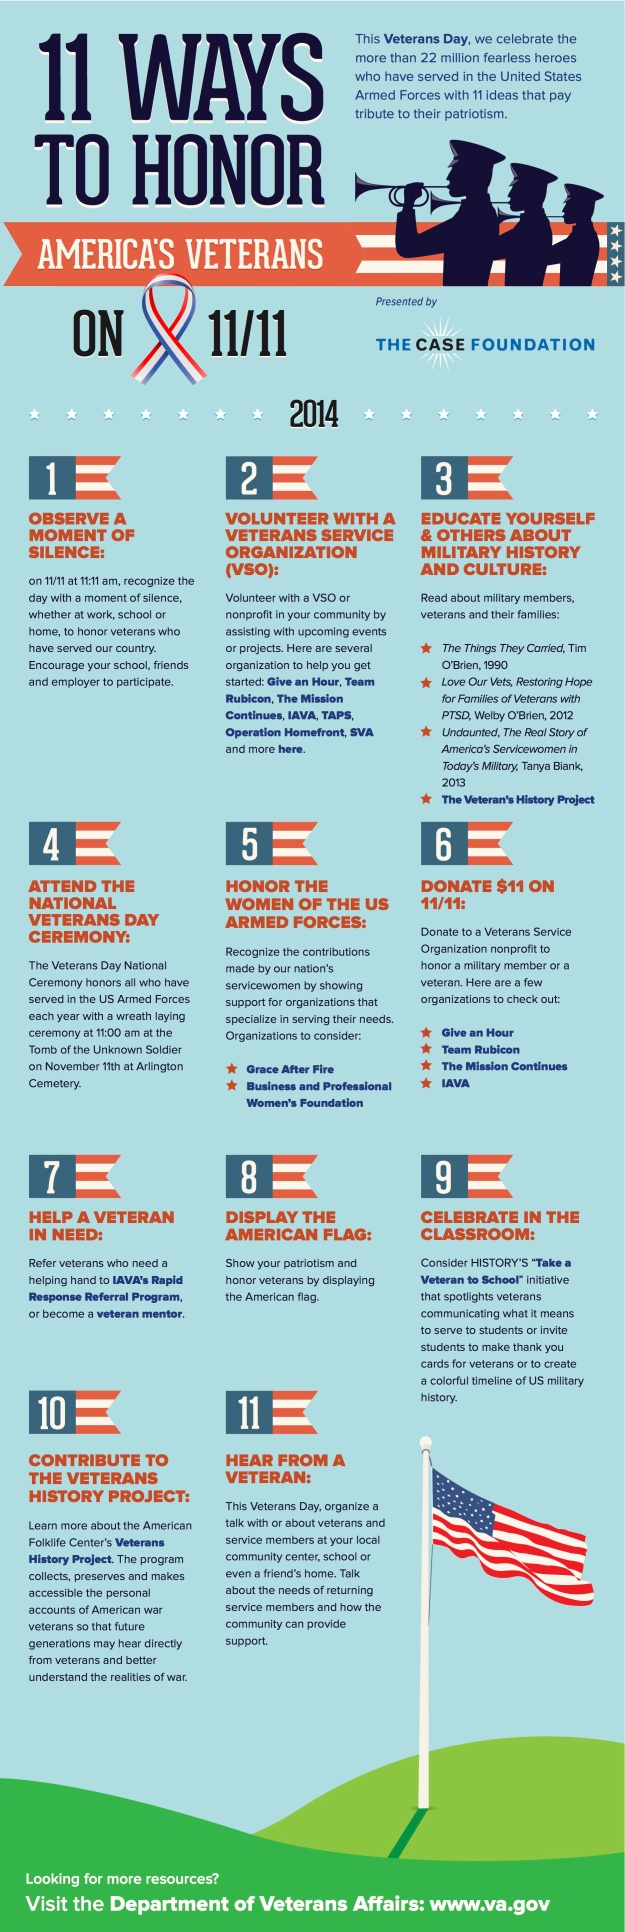 11 Ways to Honor America's Veterans on 11 - 11